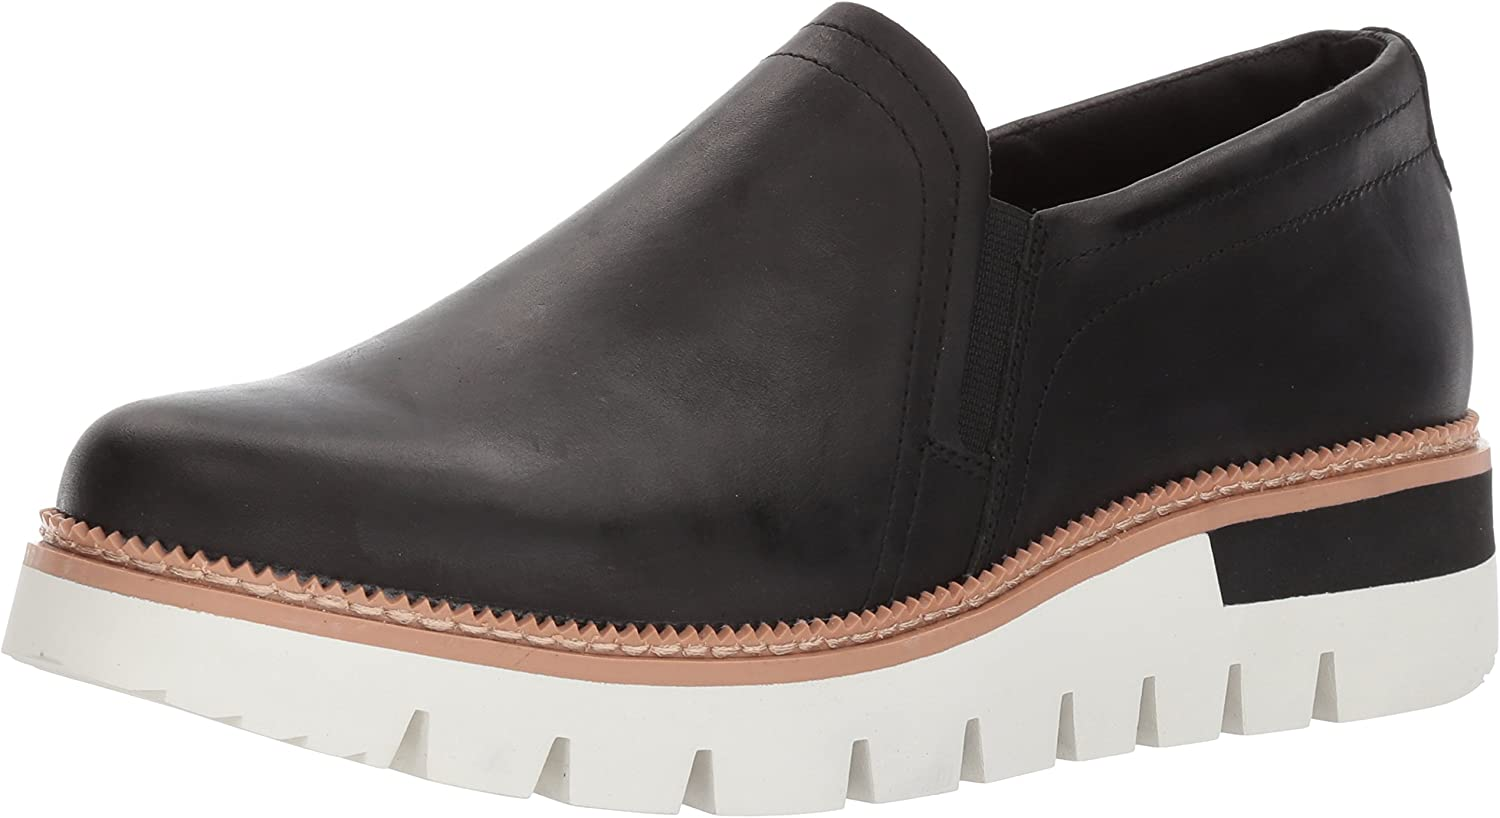 Caterpillar Womens Parody Leather Slip on shoes Loafer